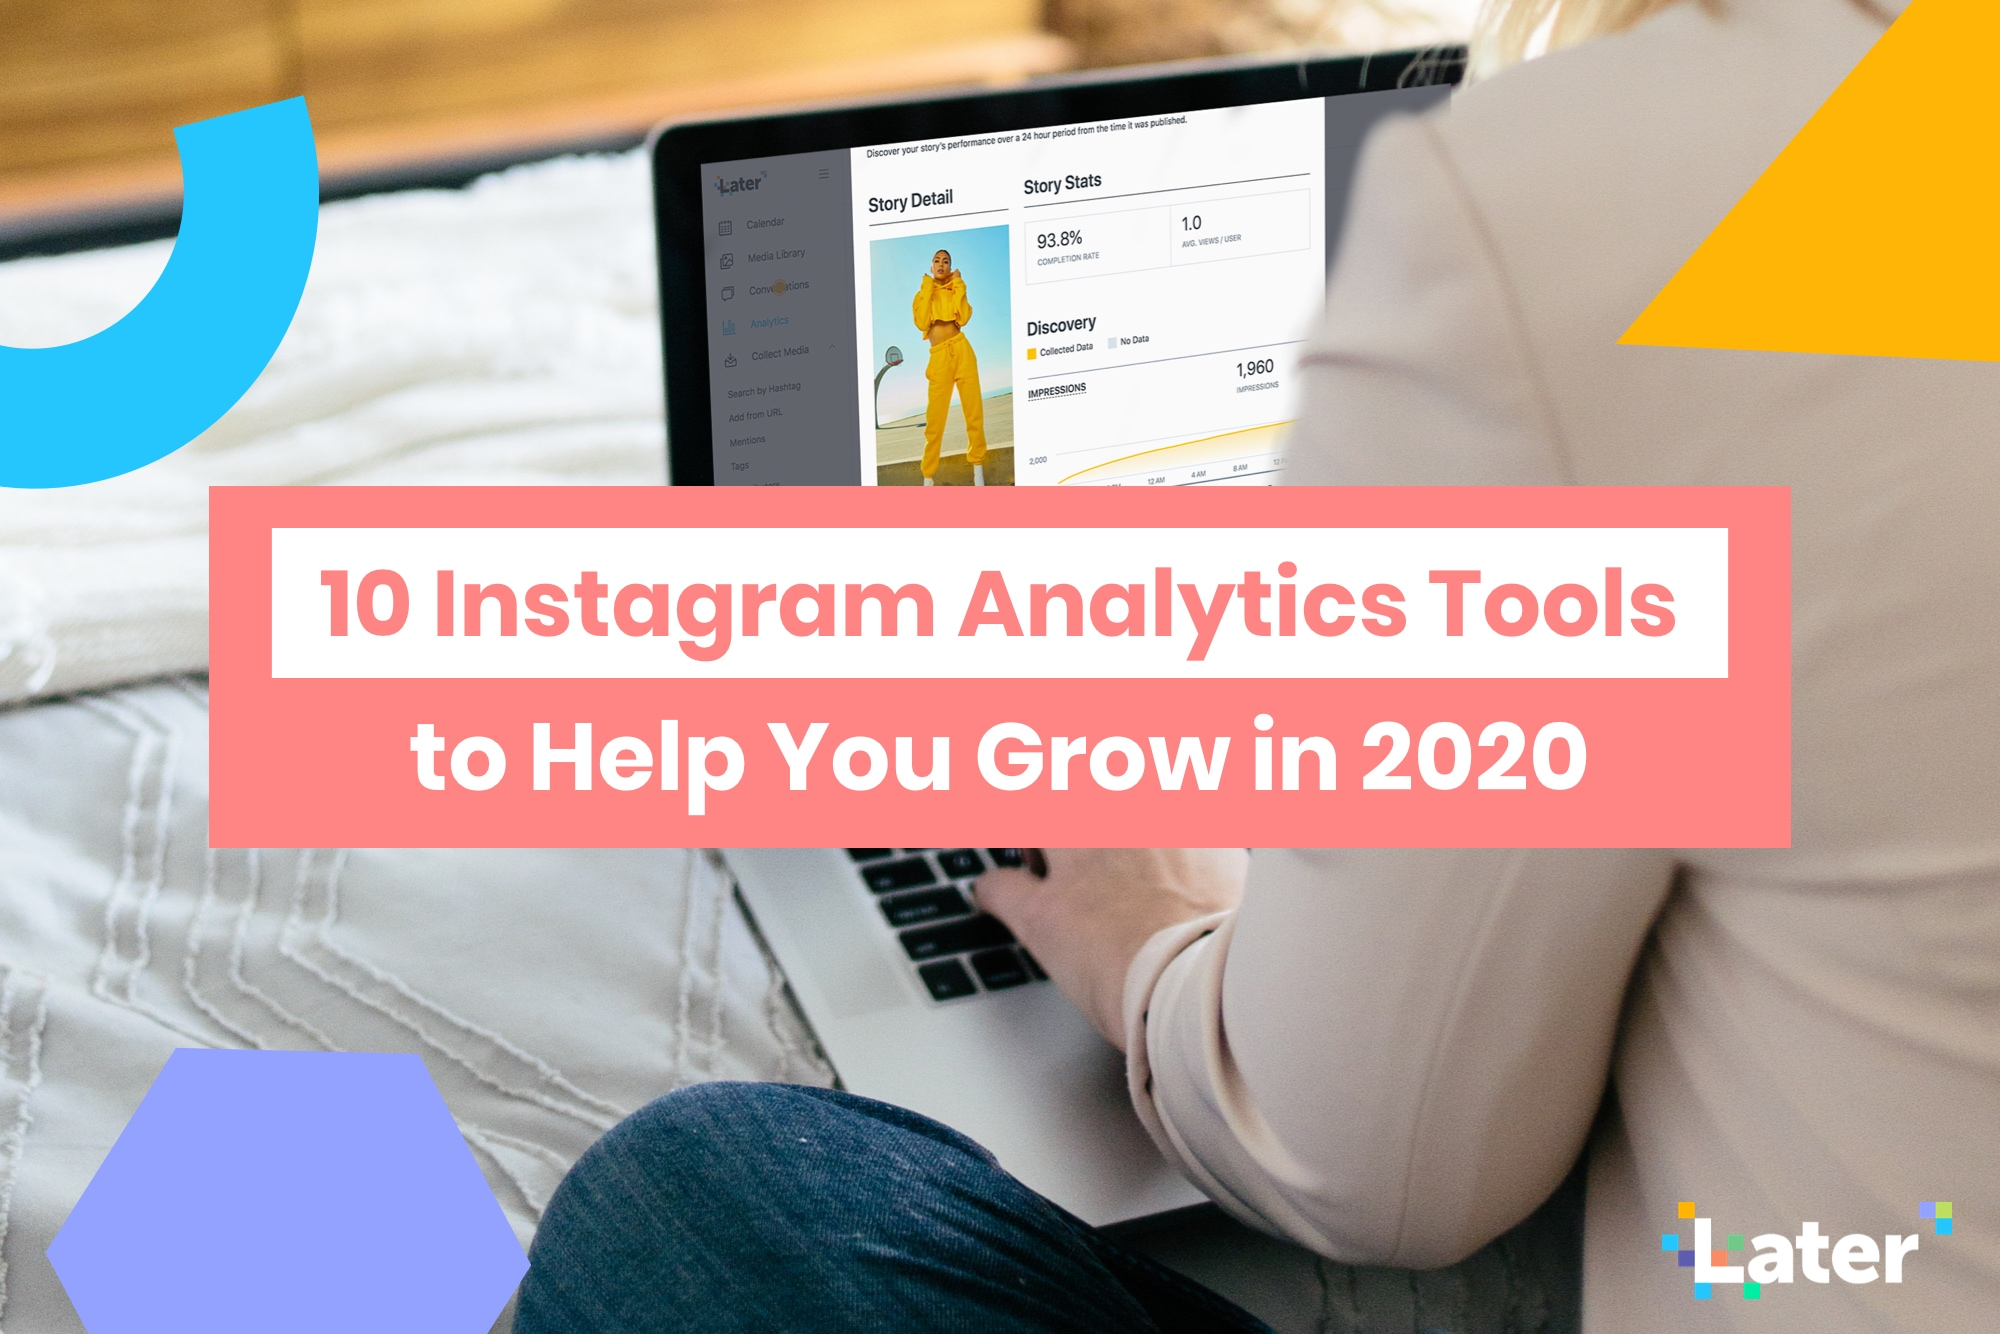 outils d'analyse Instagram